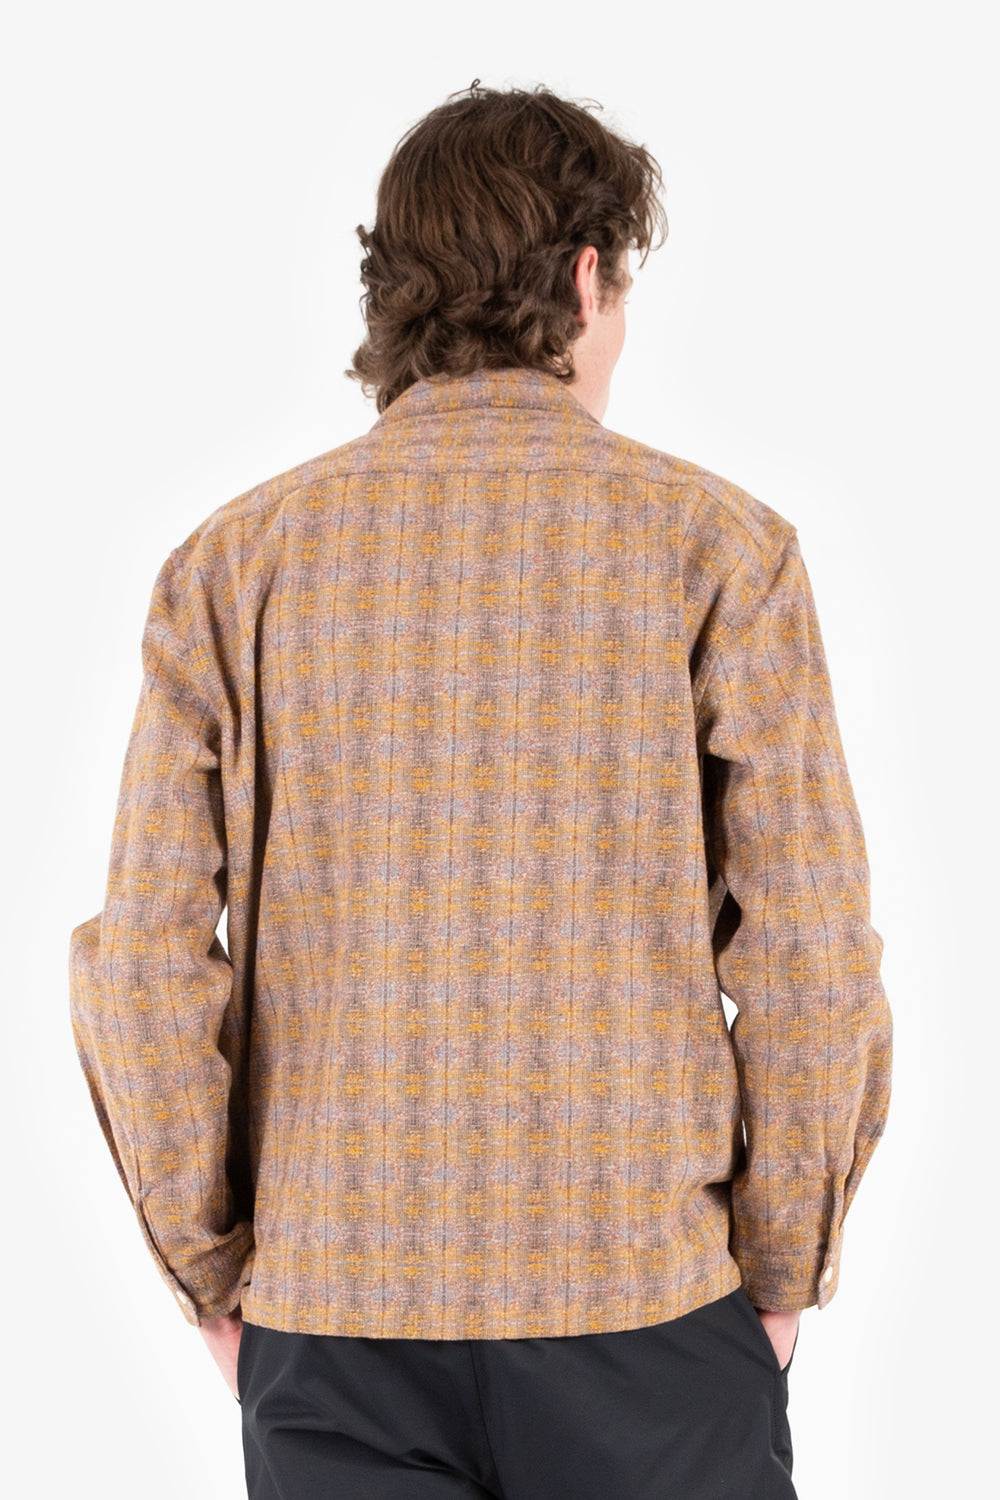 kestin tain shirt copper melange